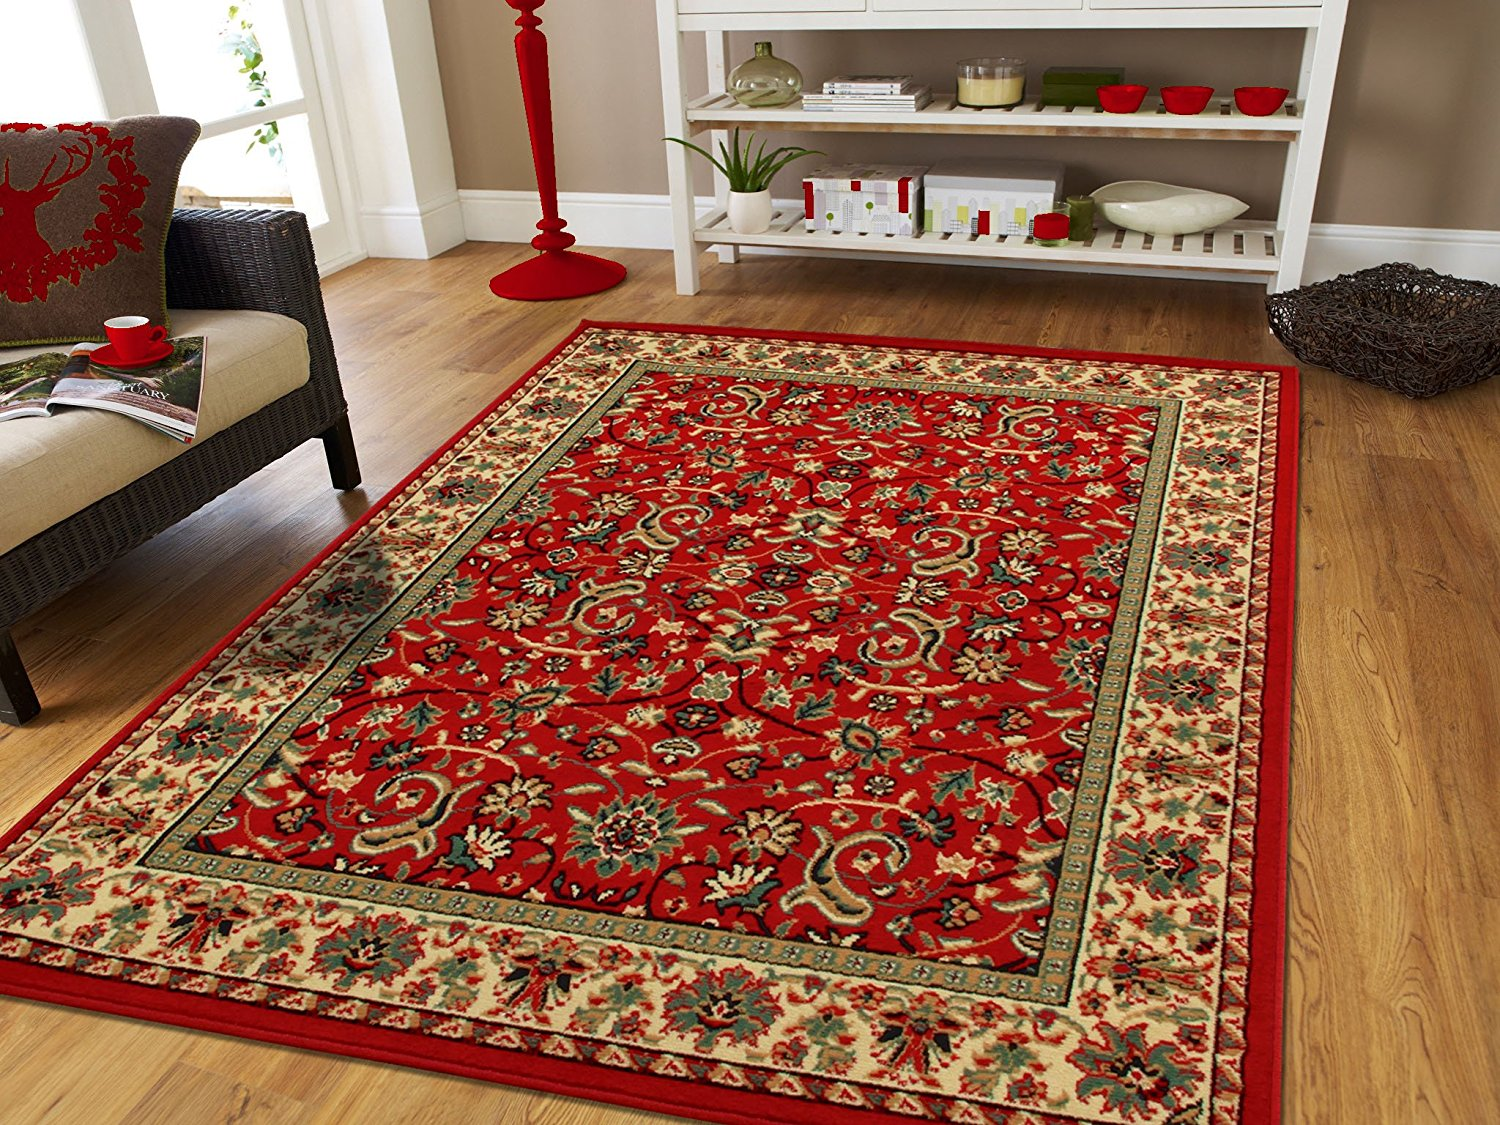 Clearance area rugs traditional area rugs on clearance 5x7 persian rug for living room 5x8 red YLIIZXA